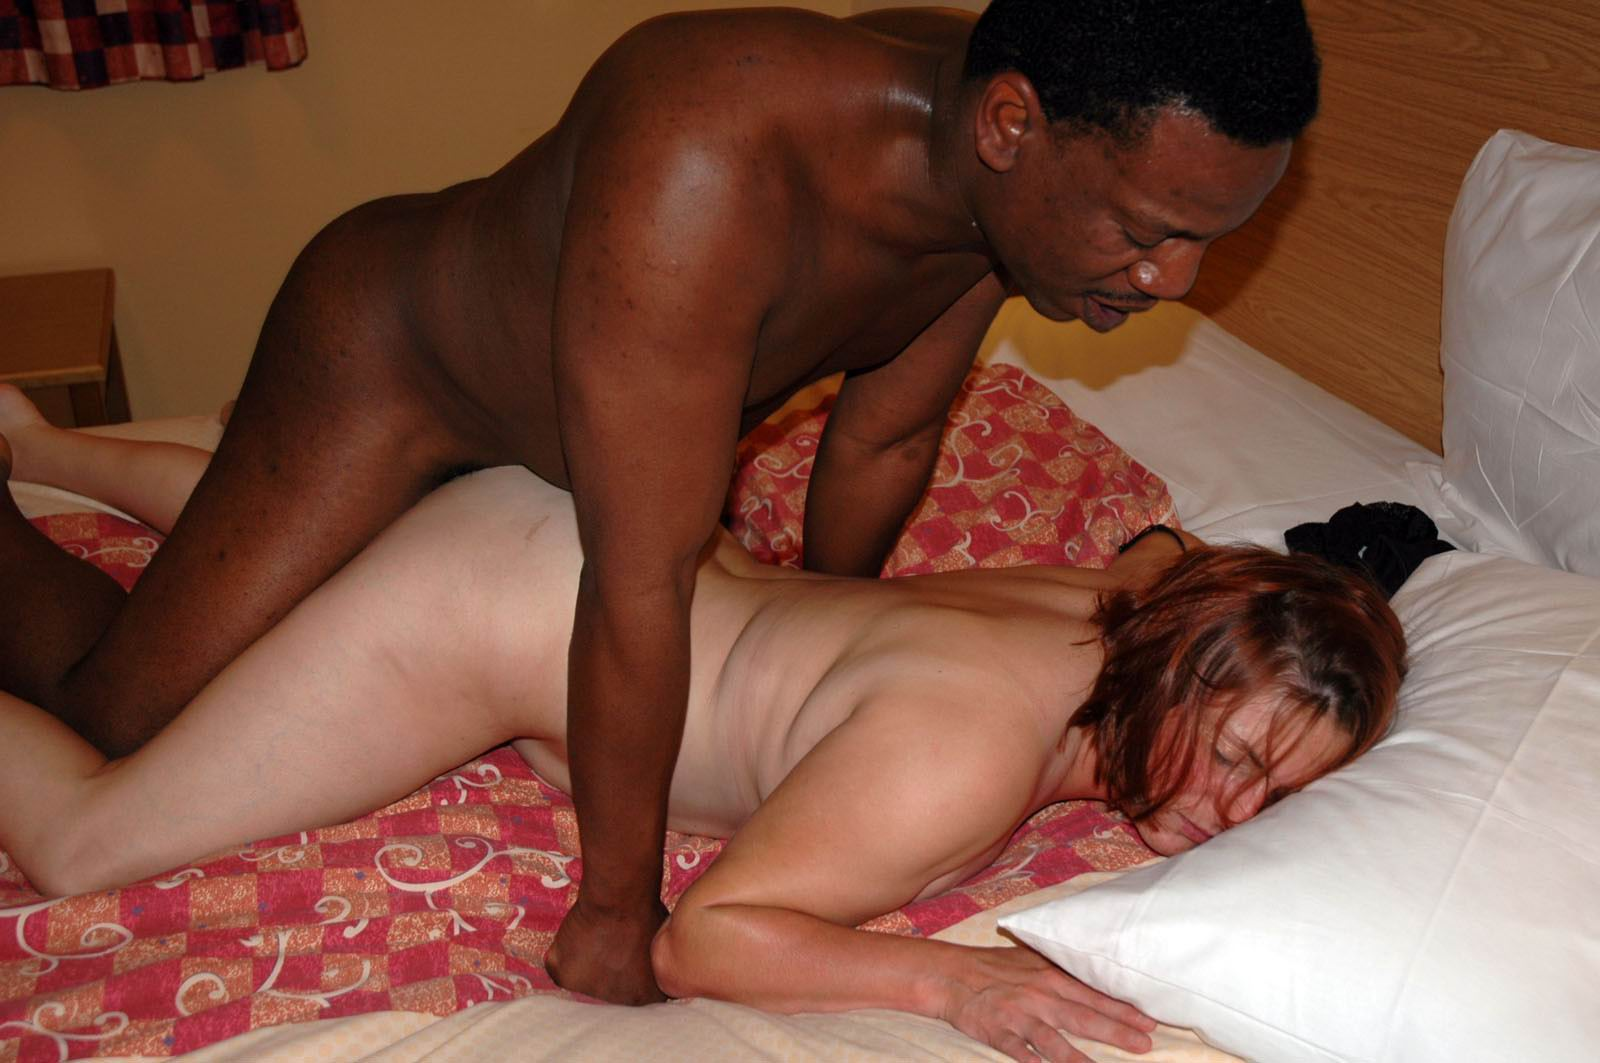 Beautiful interracial coed wow couple